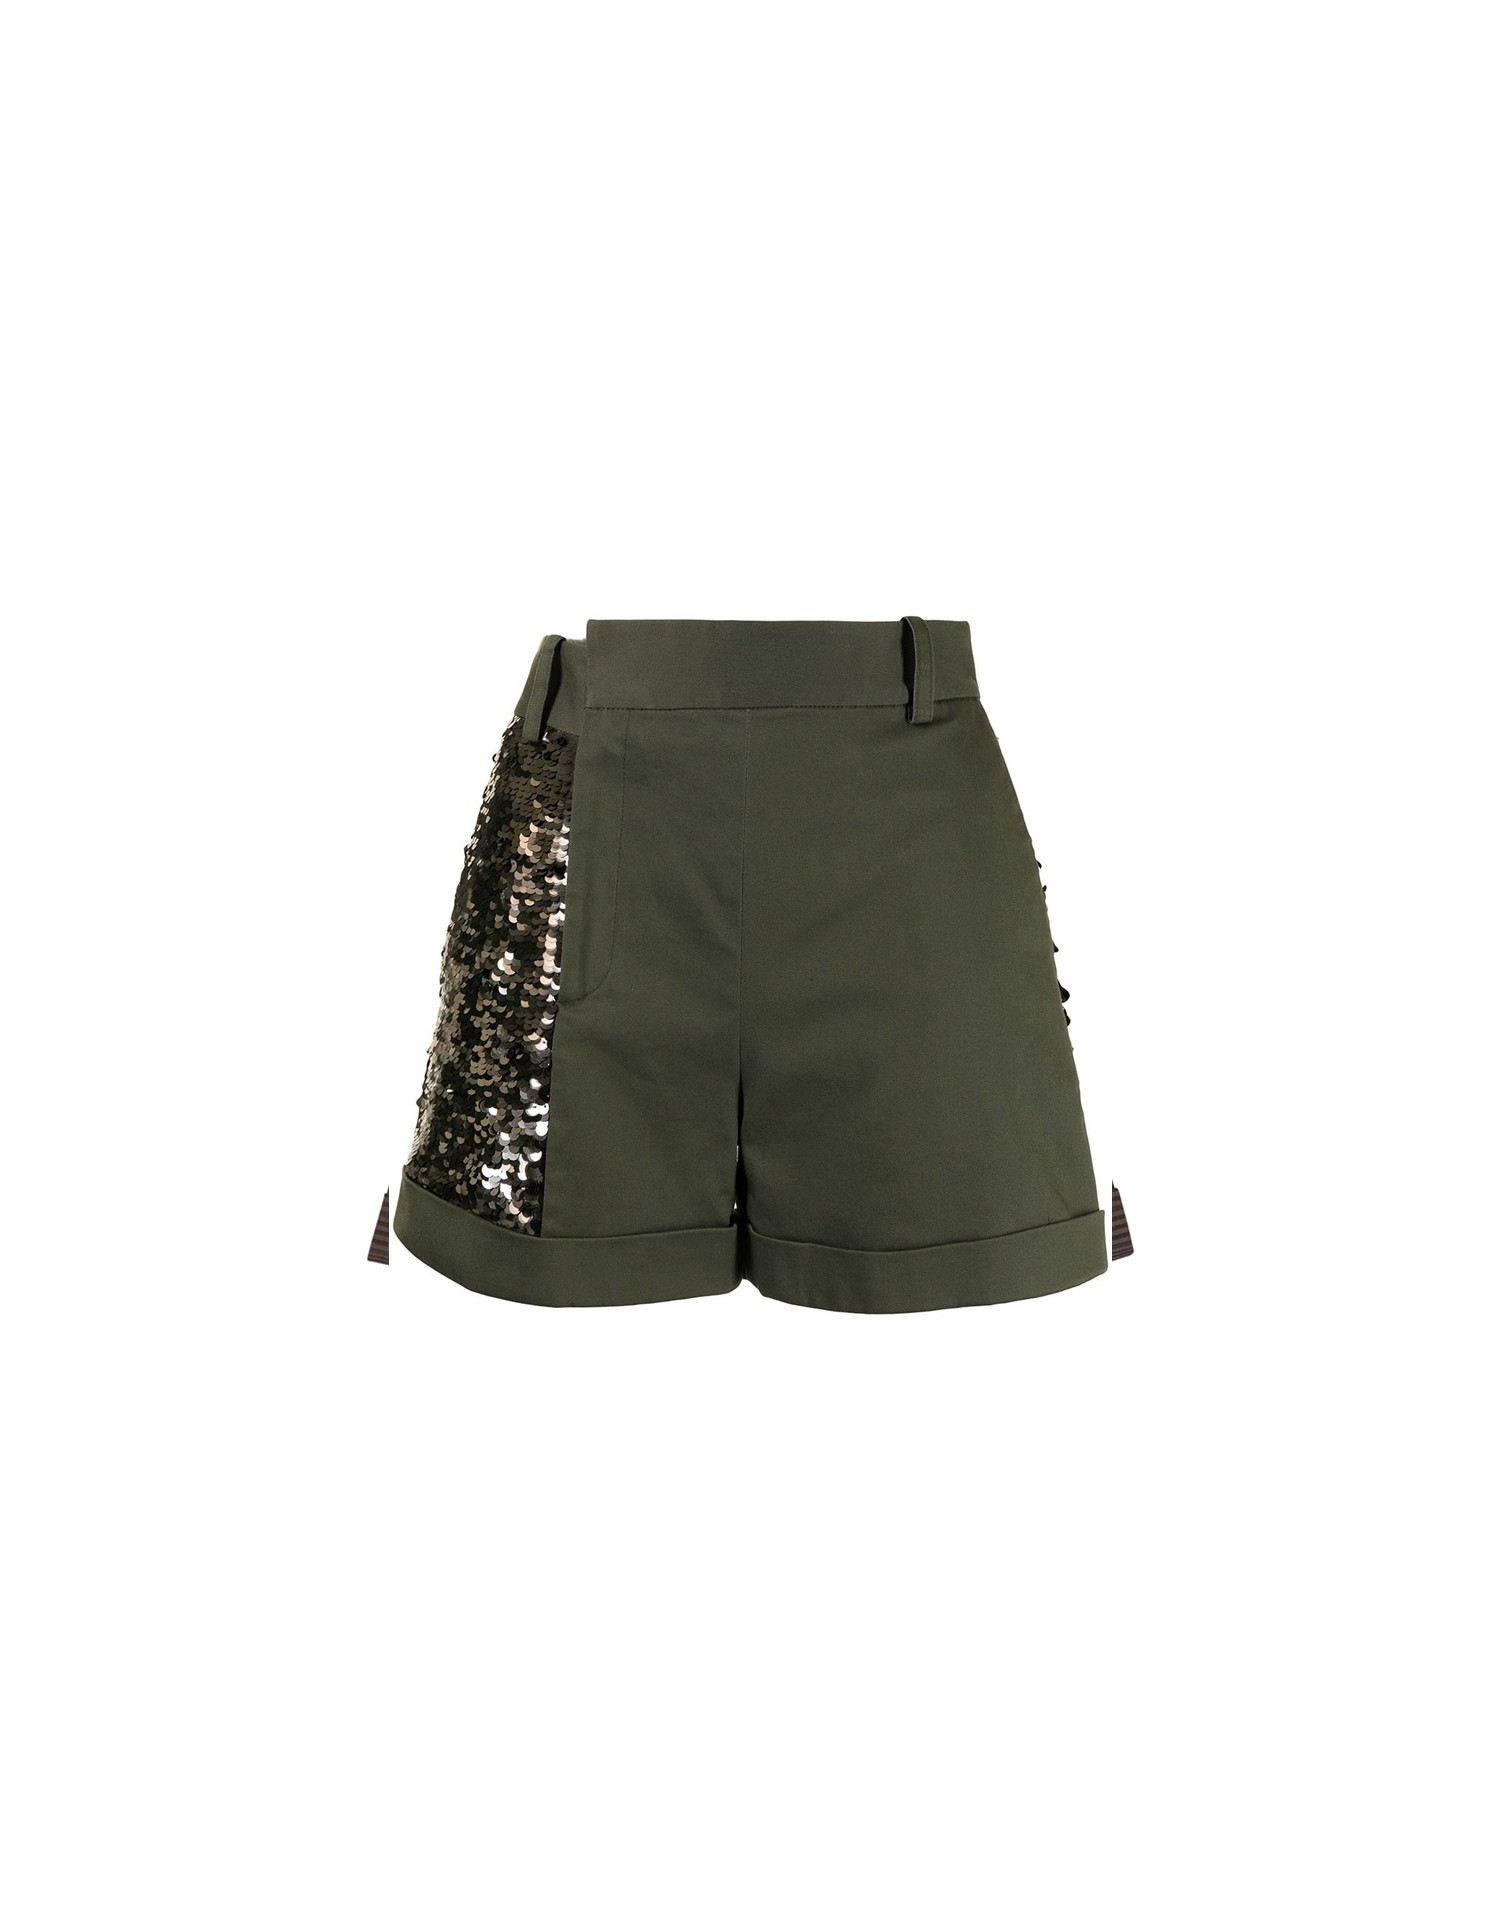 MONSE Sequined Trouser Short in Olive and Taupe Flat Front